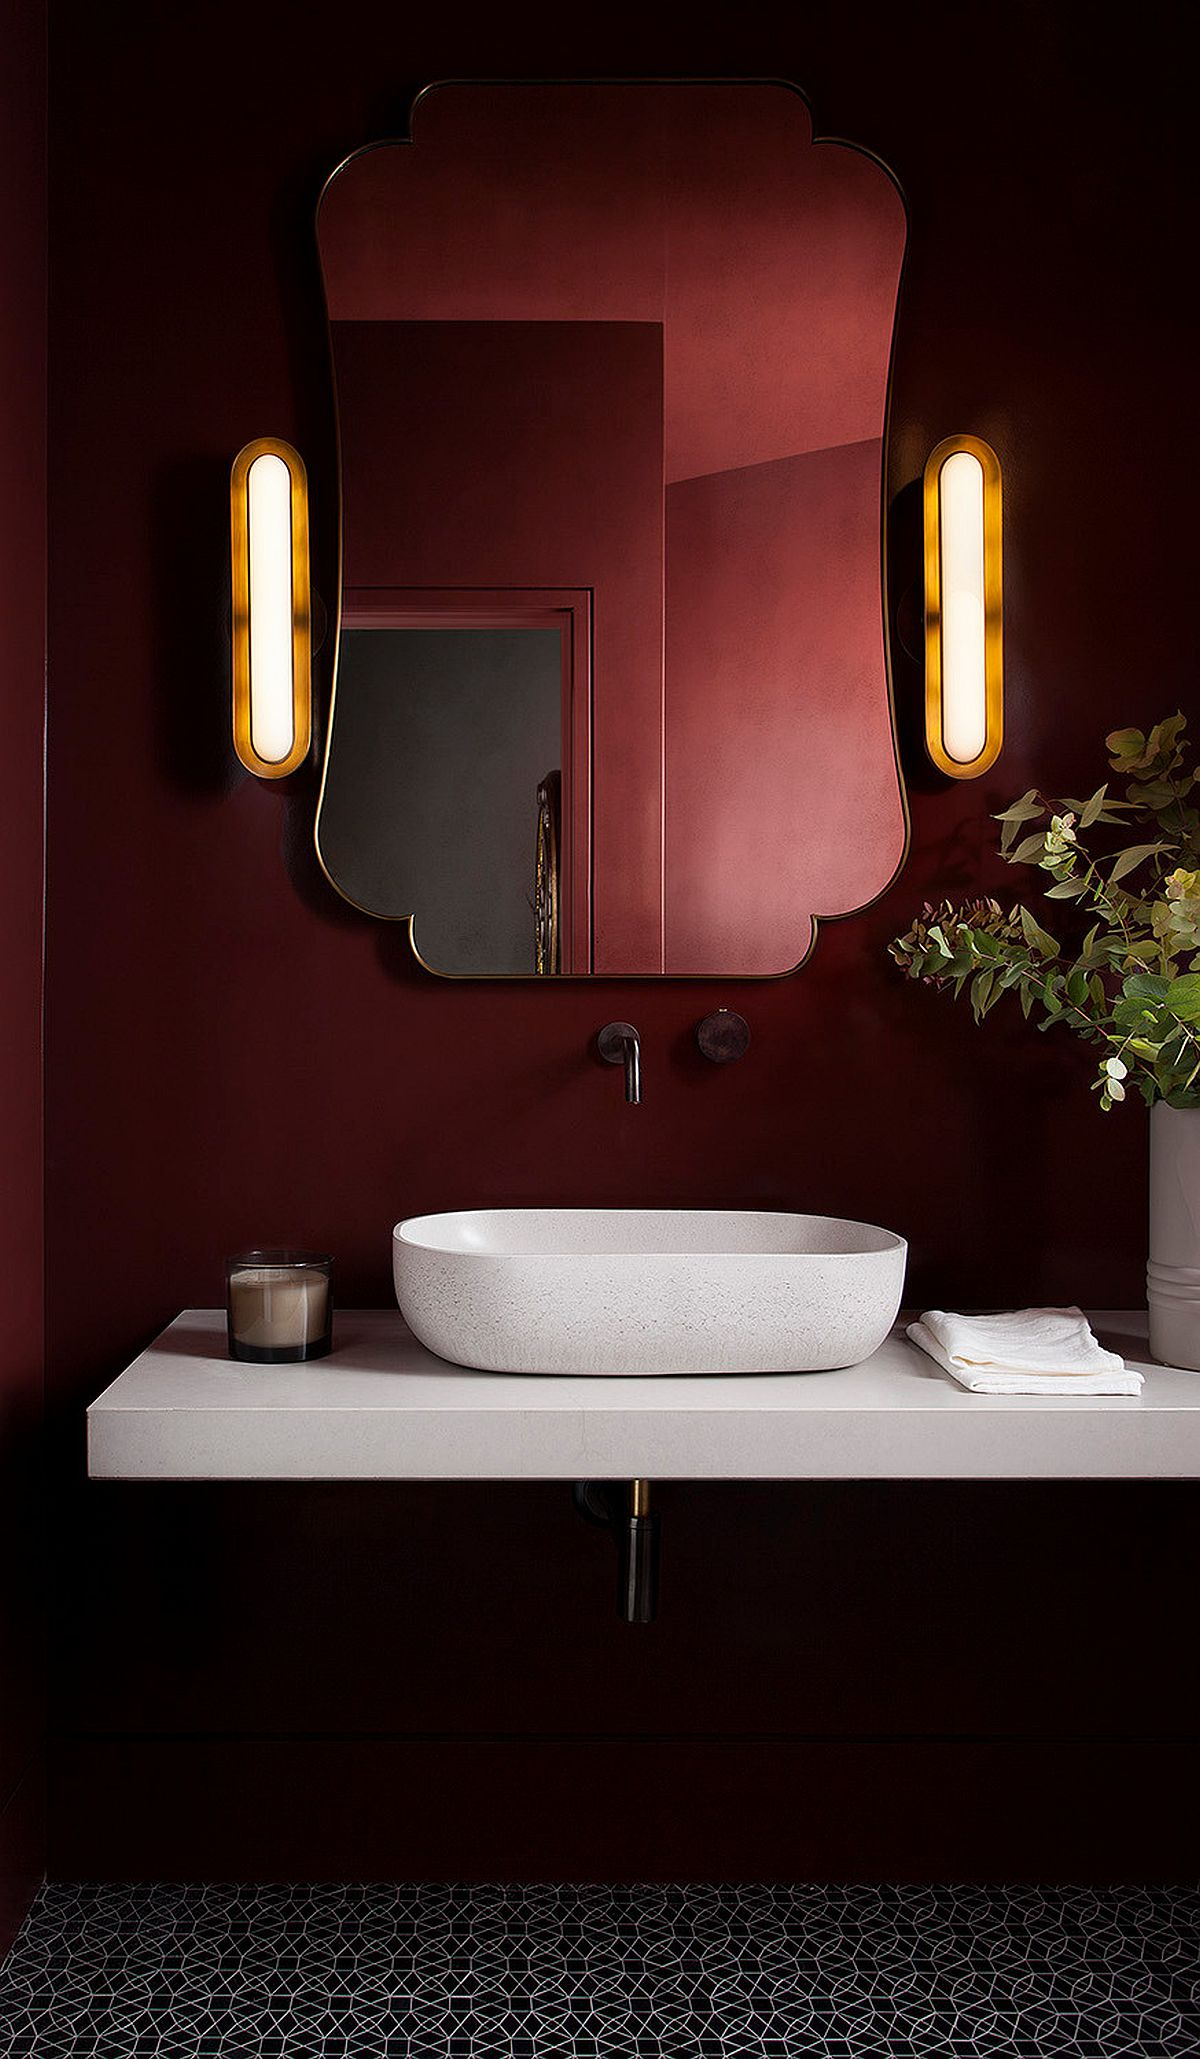 Gorgeous mirror, beautiful sconce lights and deep red walls bring glamor into this contemporary powder room